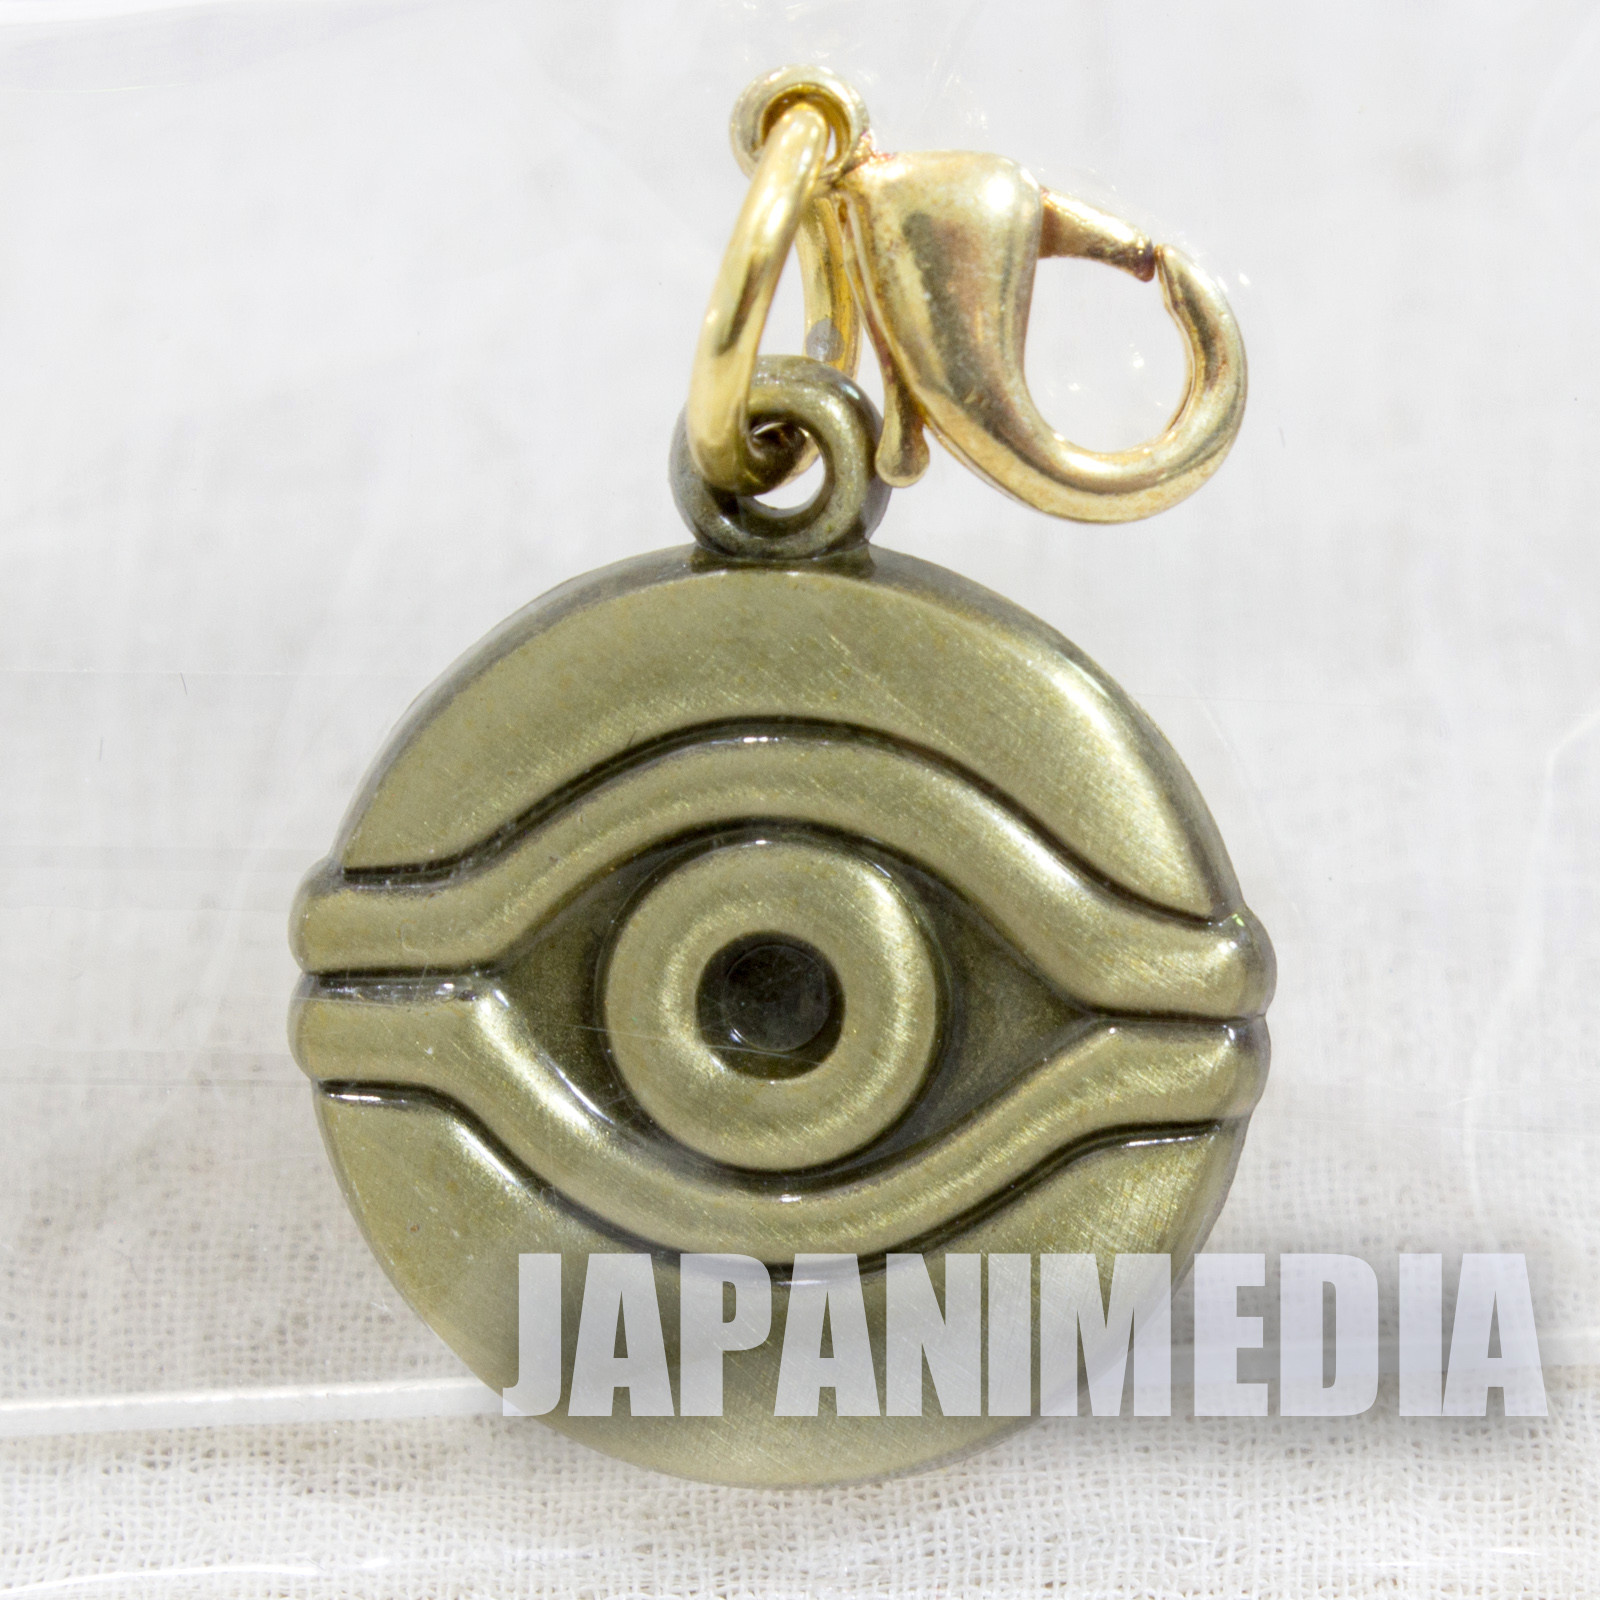 Yu-Gi-Oh! Millenium Eye 20th Millenium item Metal charm collection [5] JAPAN ANIME